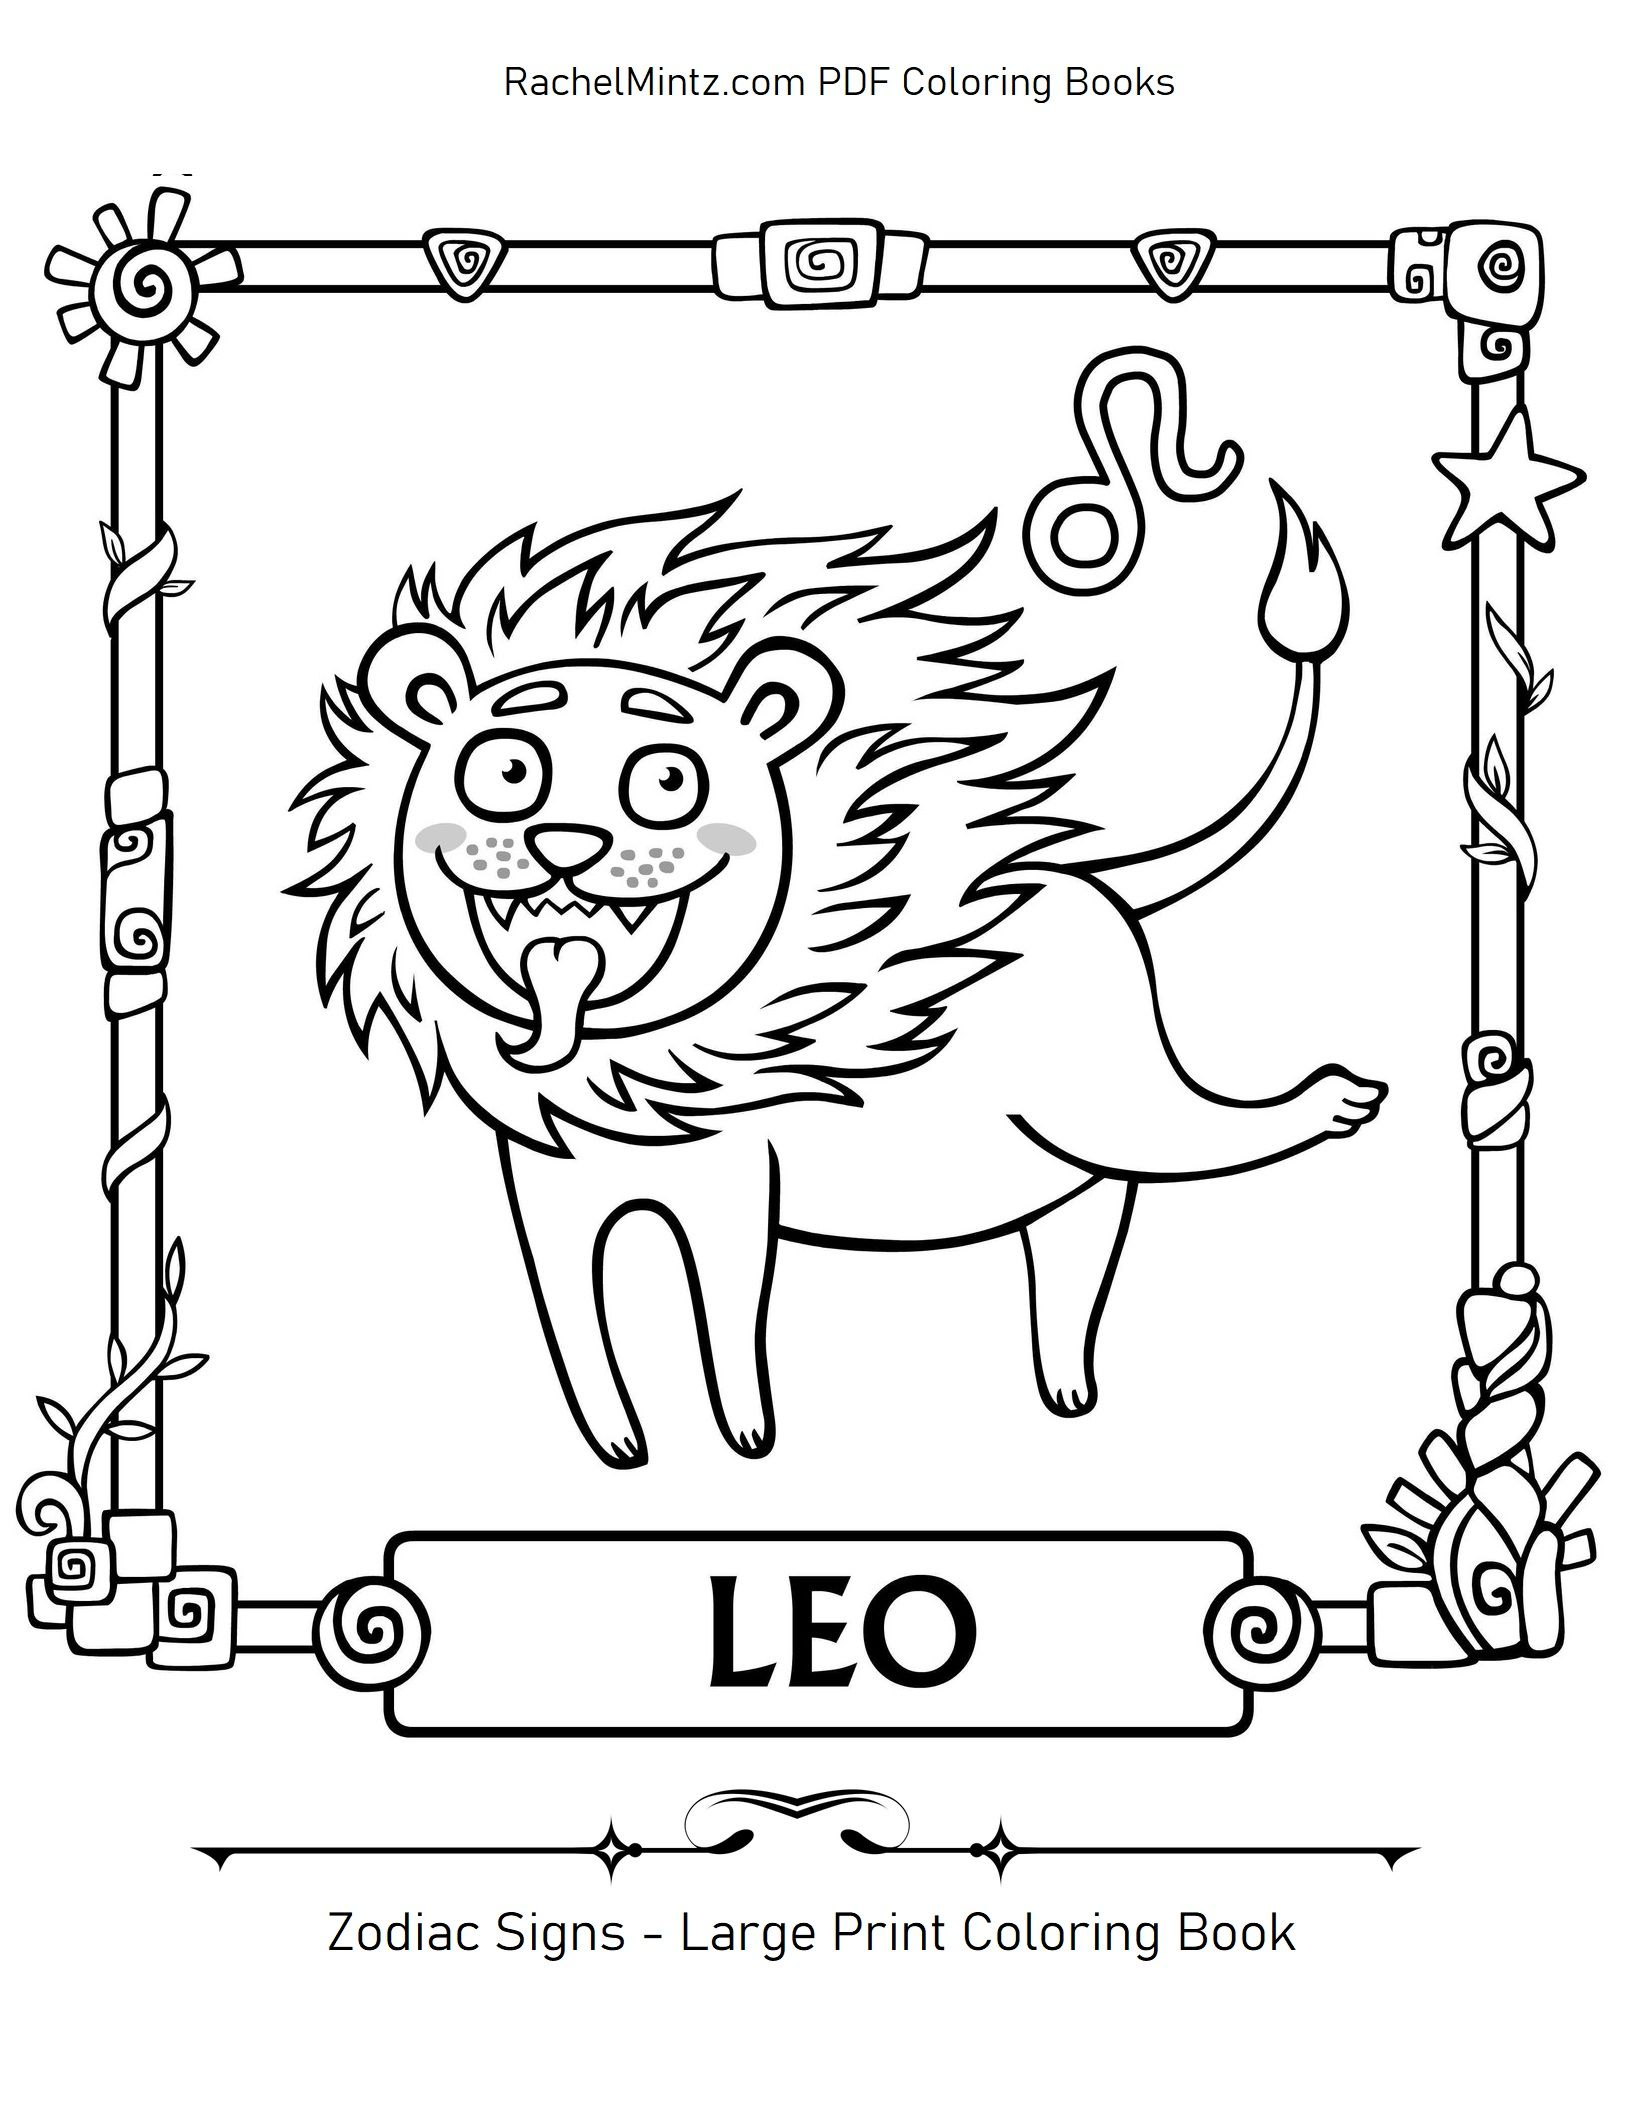 Easy Large Print Coloring Pages Large Prints Coloring Books Coloring Pages To Print